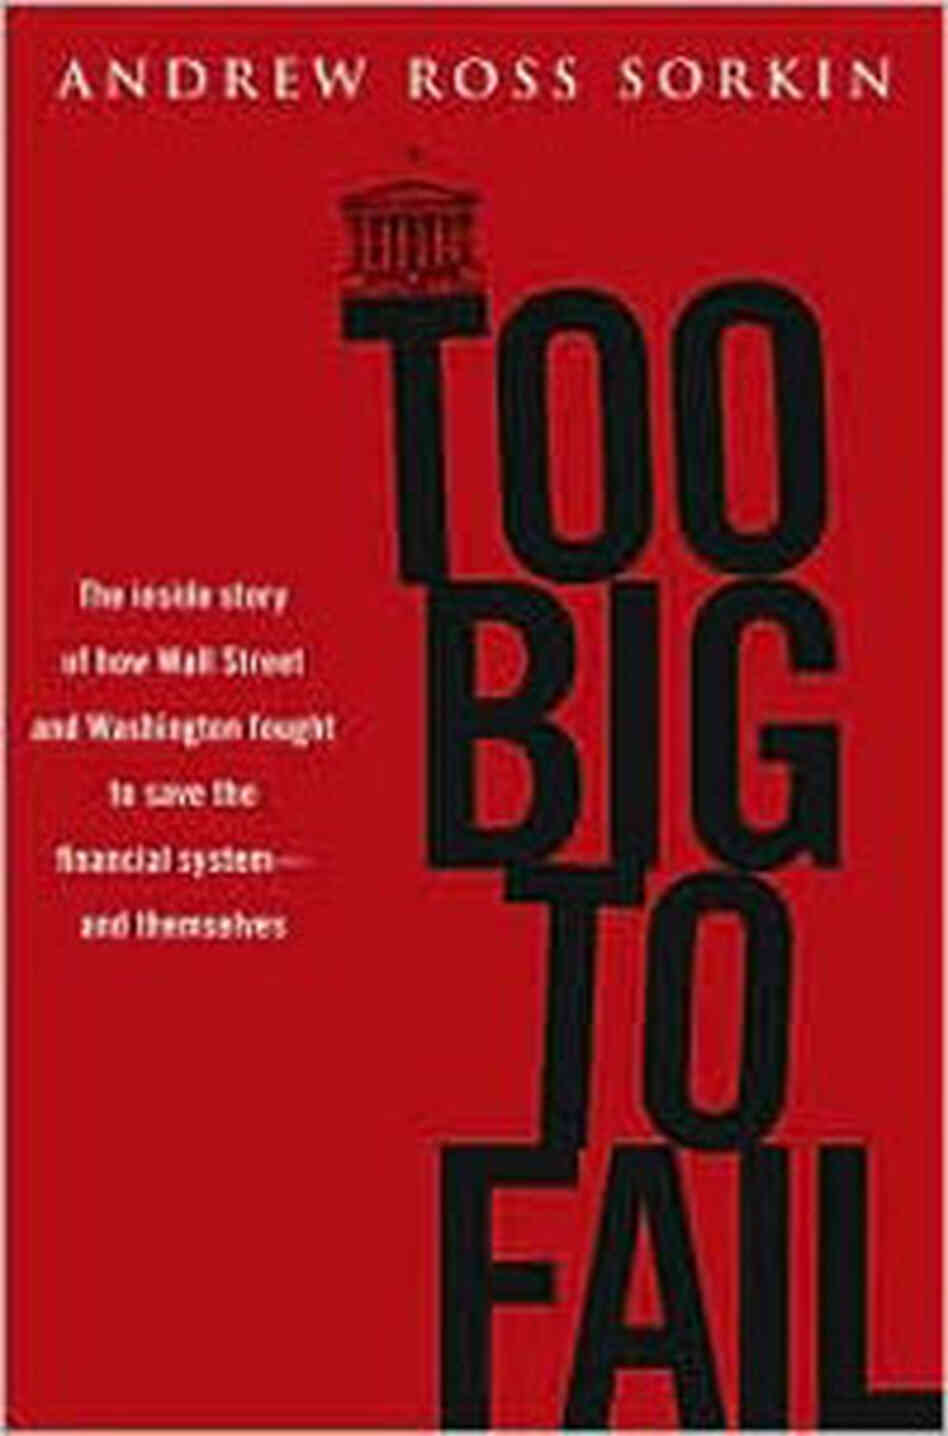 'Too Big To Fail'